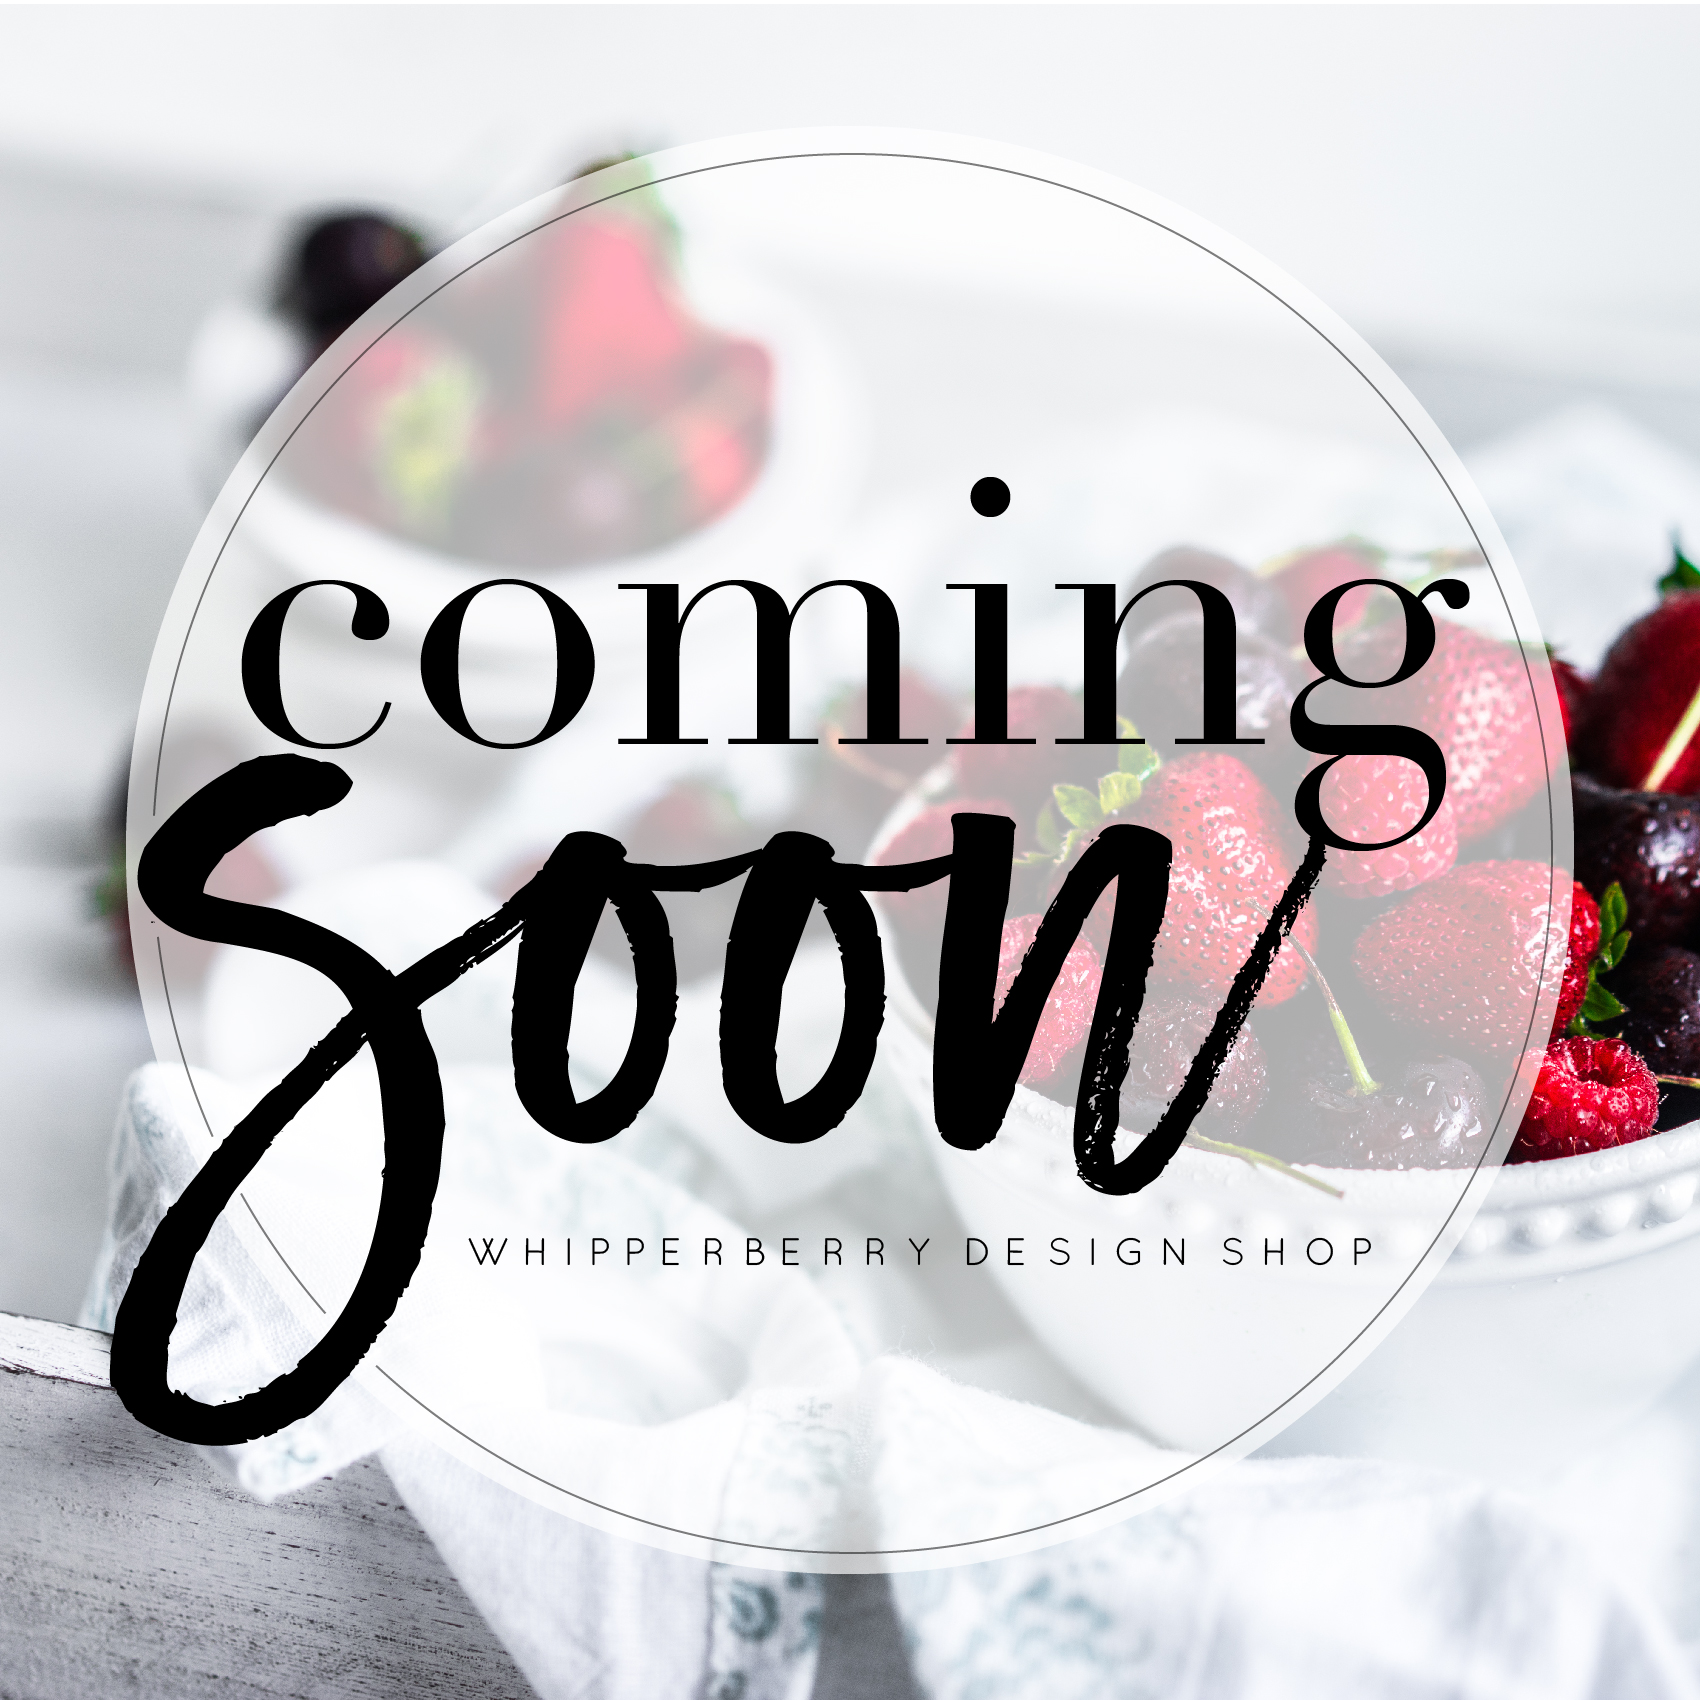 Coming Soon the WhipperBerry Design Shop early 2018